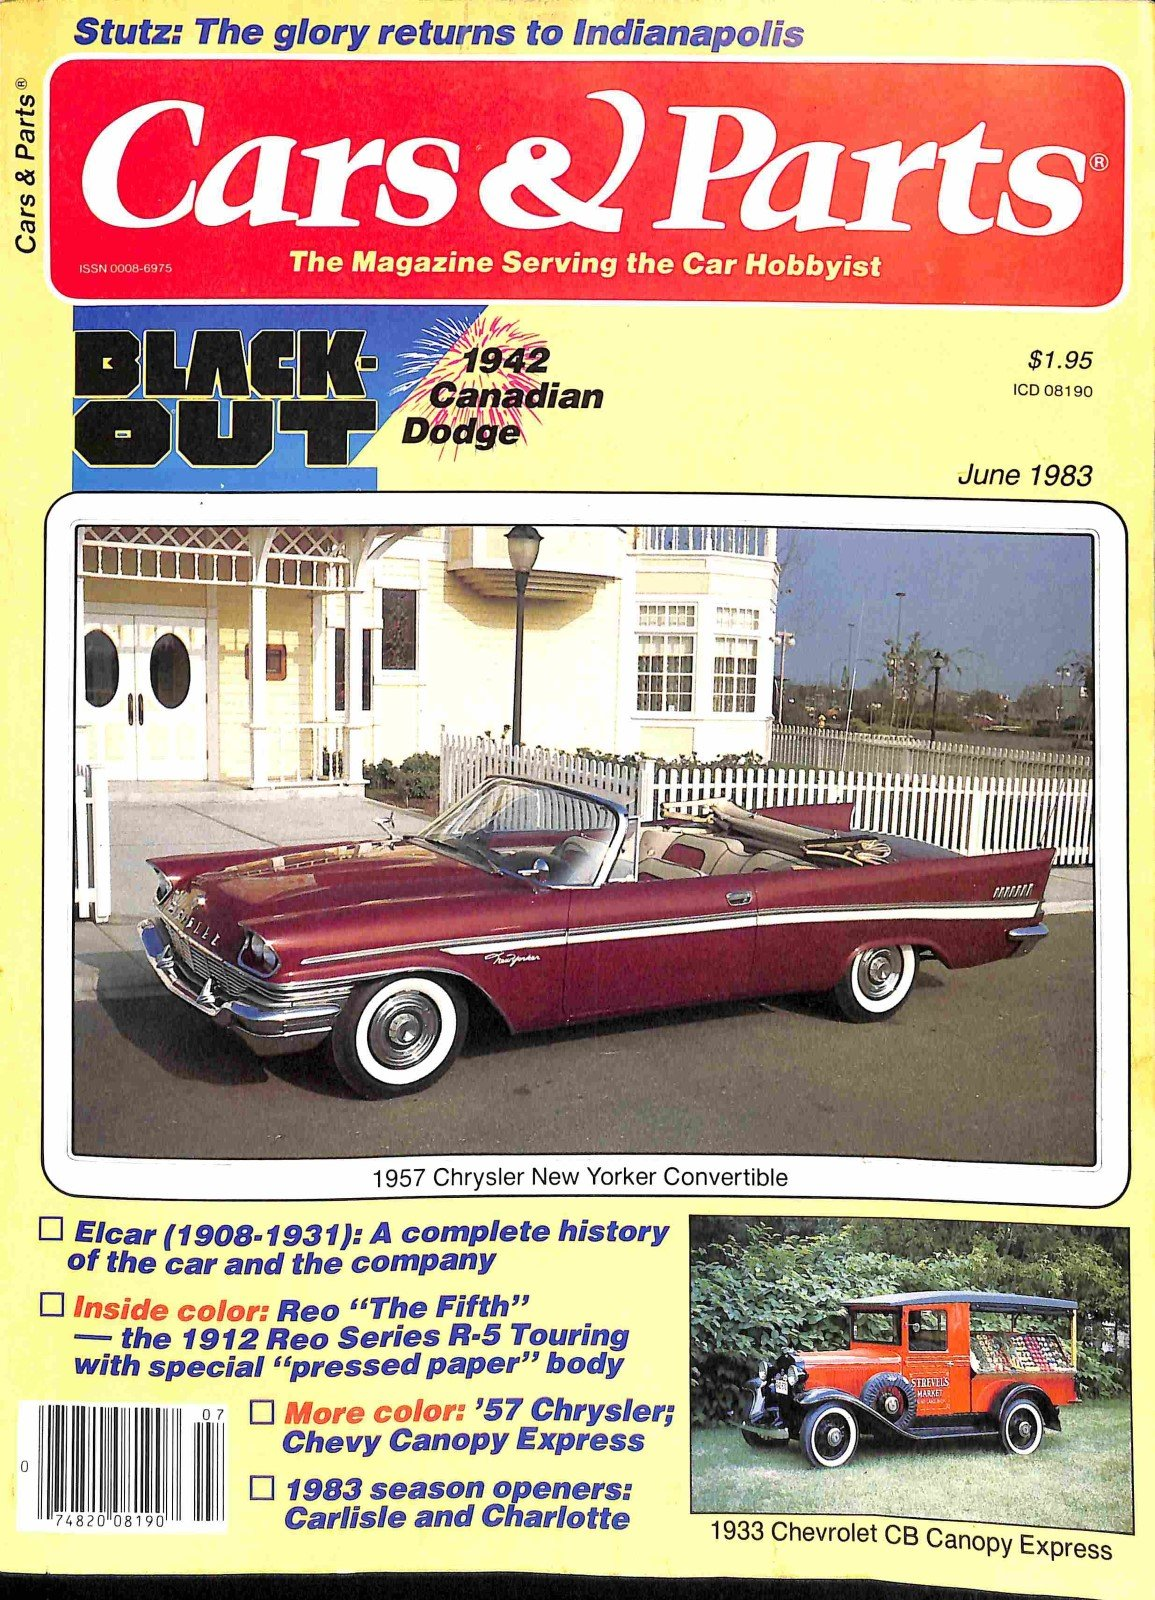 Cars And Parts June 1983 Meremart Books 1942 Chrysler New Yorker Convertible